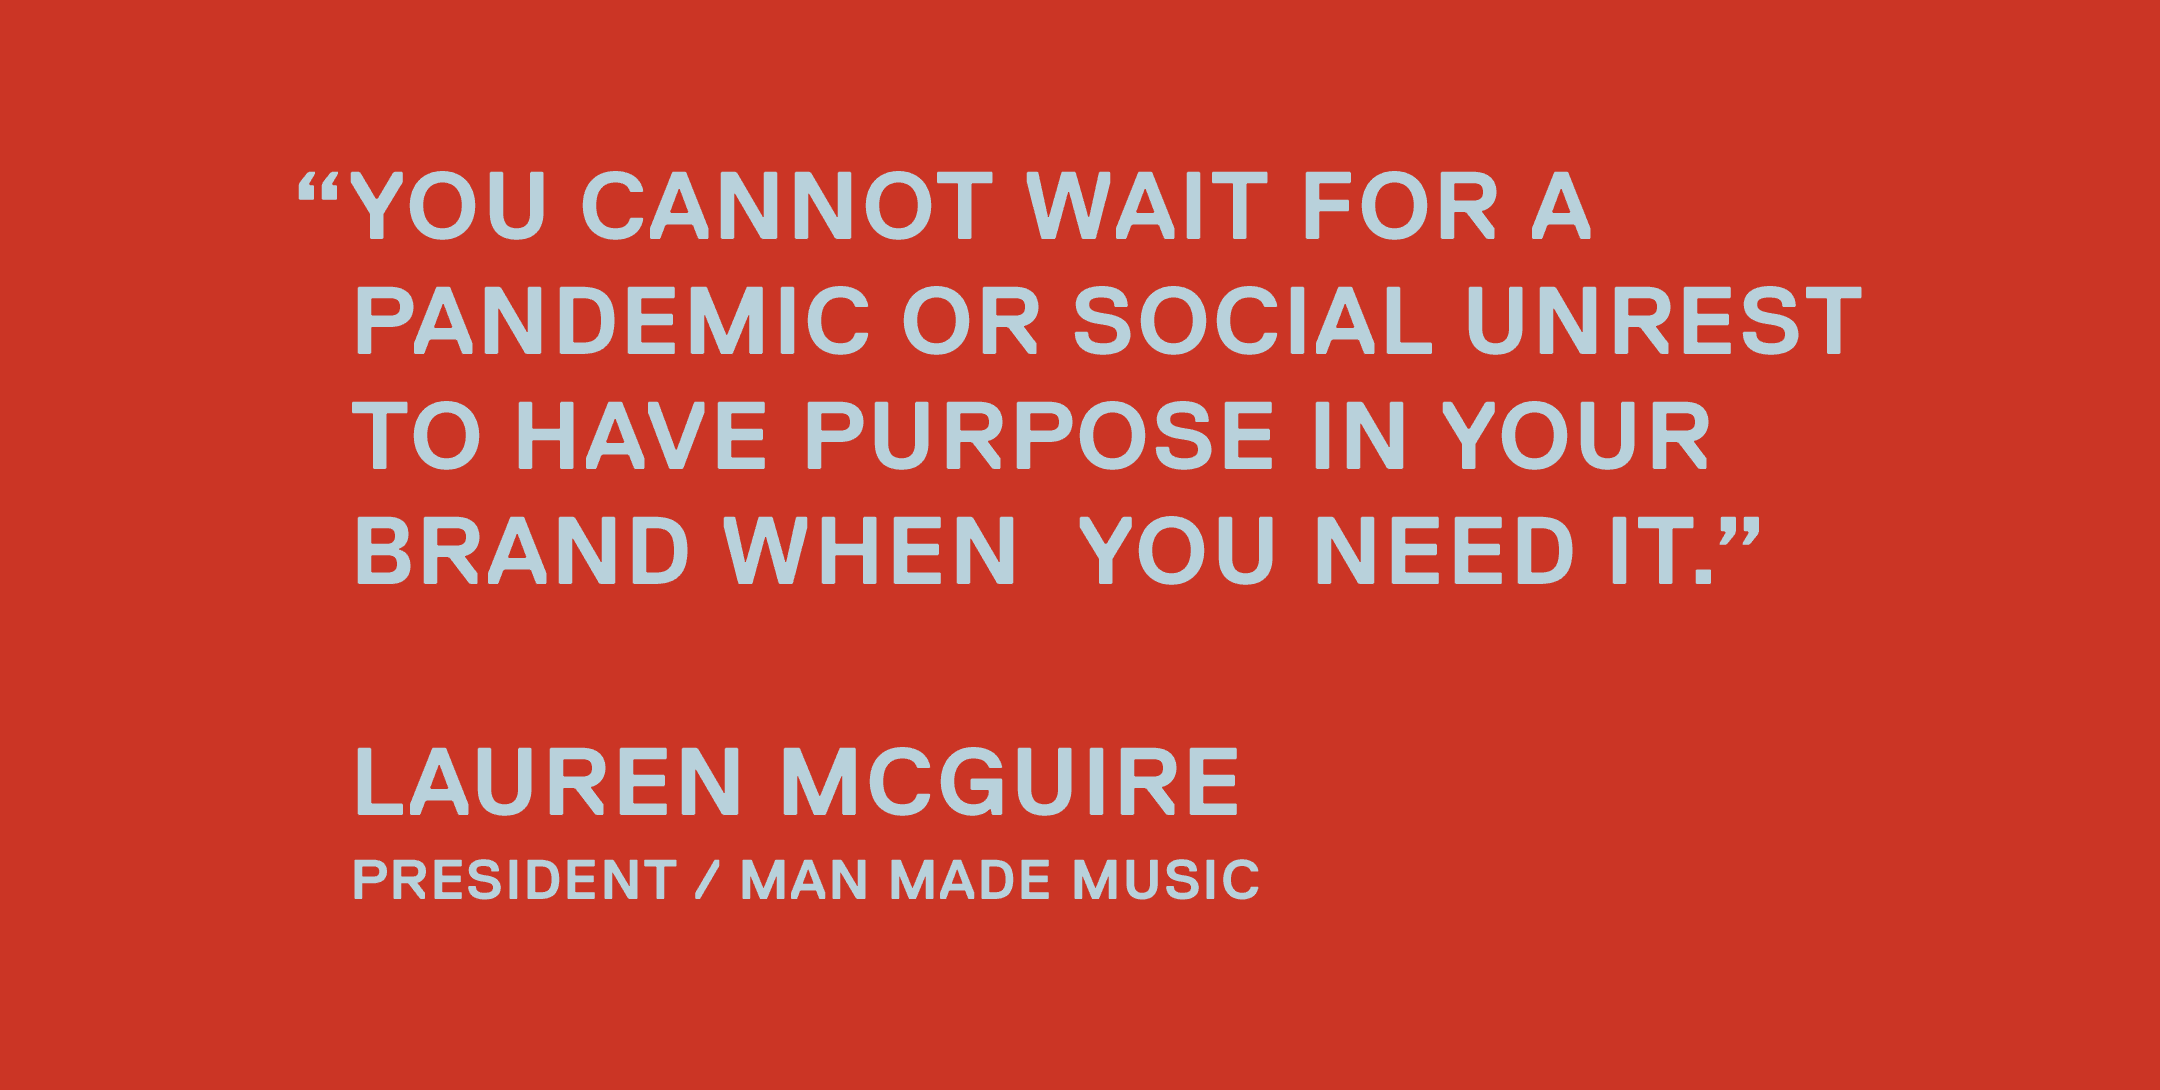 You cannot wait for a pandemic or social unrest to have purpose in your brand when you need it. — Lauren McGuire, President / Man Made Music